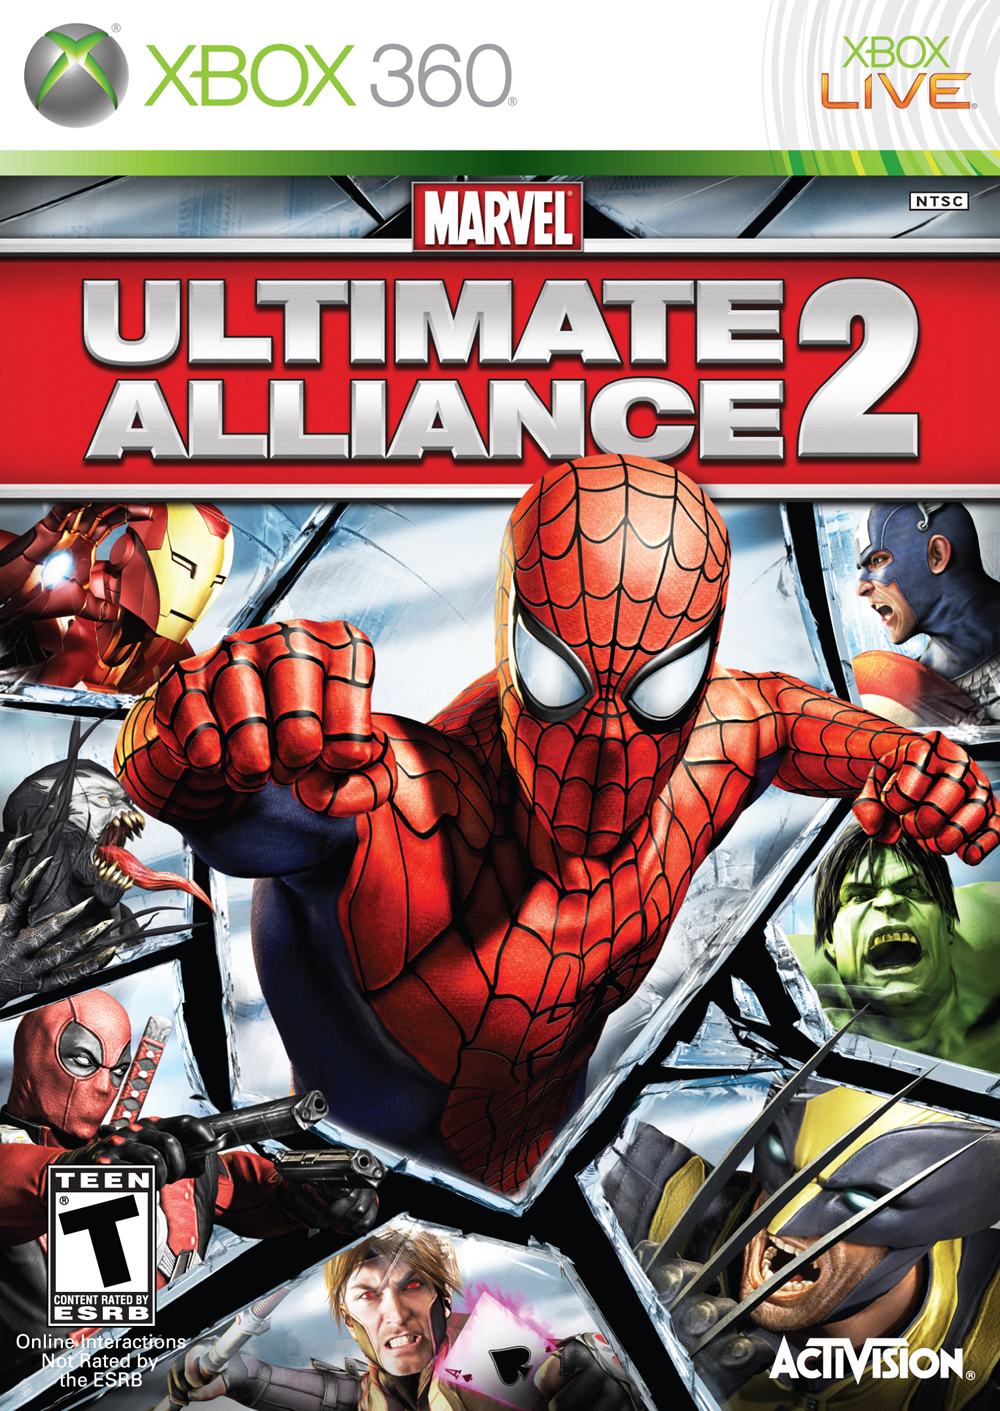 Marvel ultimate alliance cheats, cheat codes, unlockables for pc.